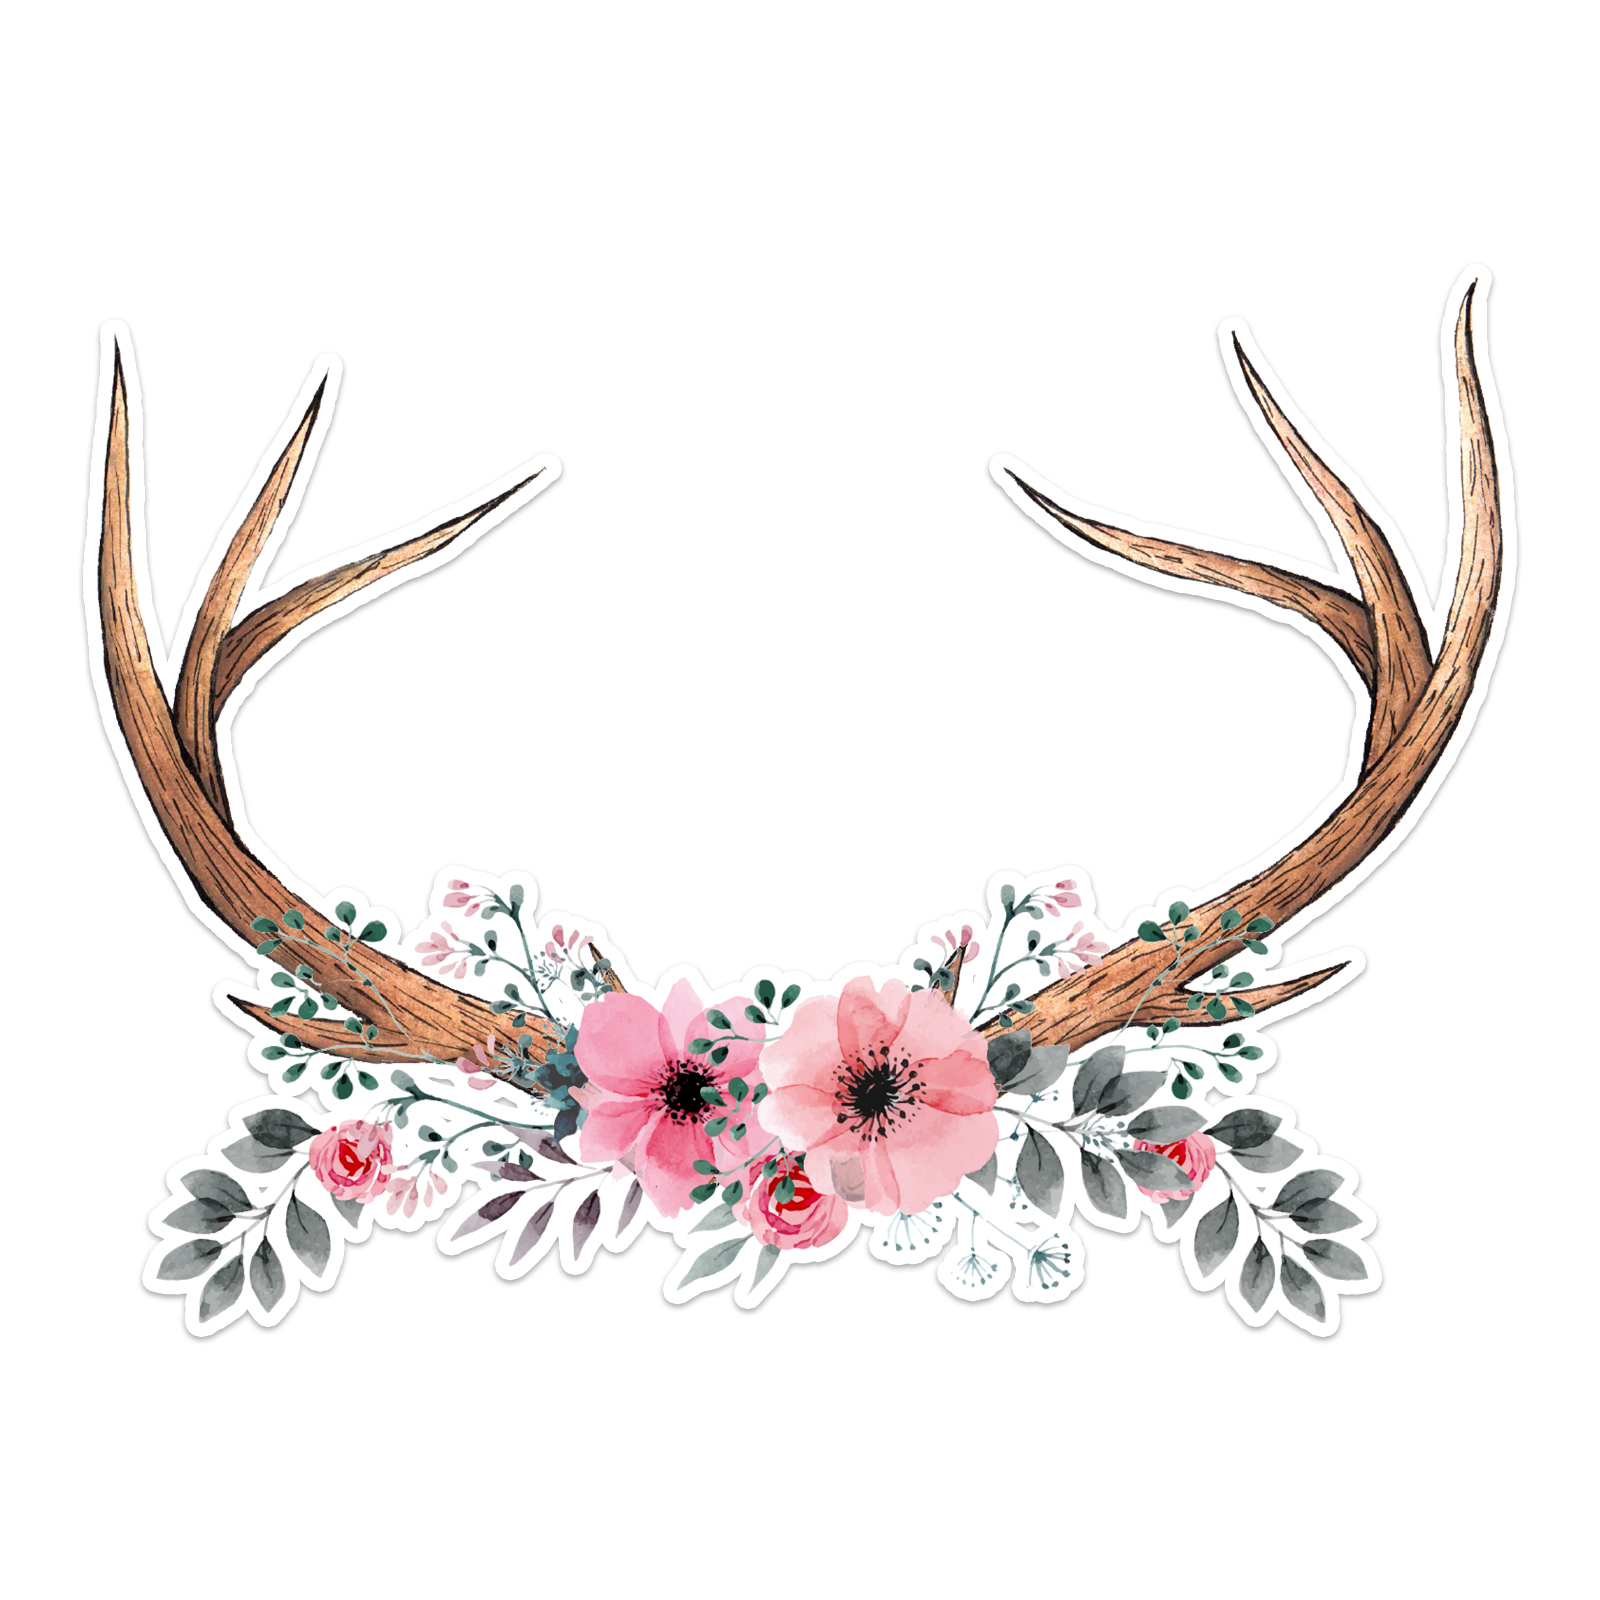 Floral Antlers Laptop Trackpad Sticker 3 Quot Tall X 4 Quot Wide